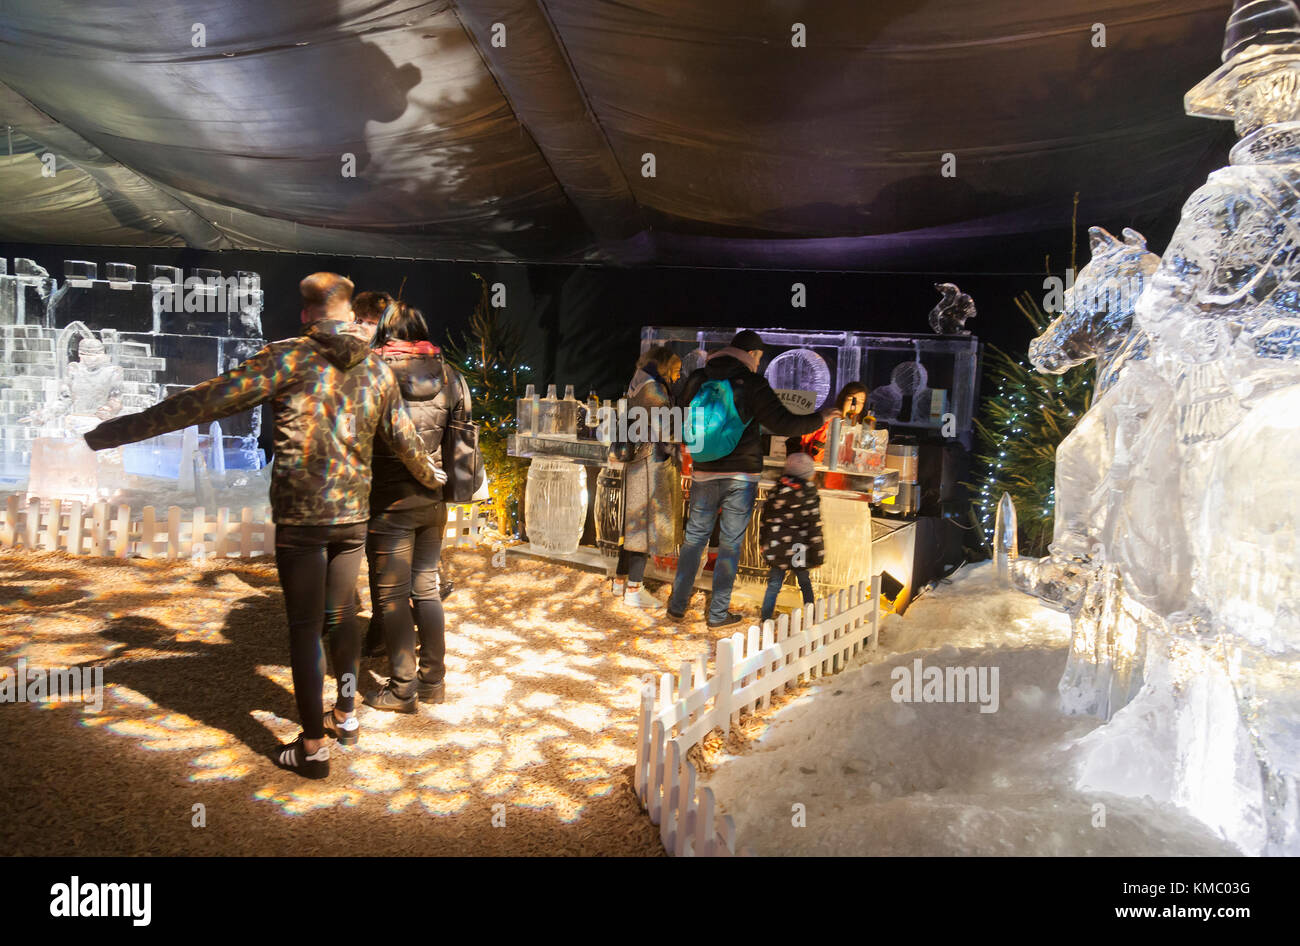 Visitors viewing Mary Queen of Scots blindfolded at her execution carved out of ice and visiting the Ice Bar, Glasgow's - Stock Image